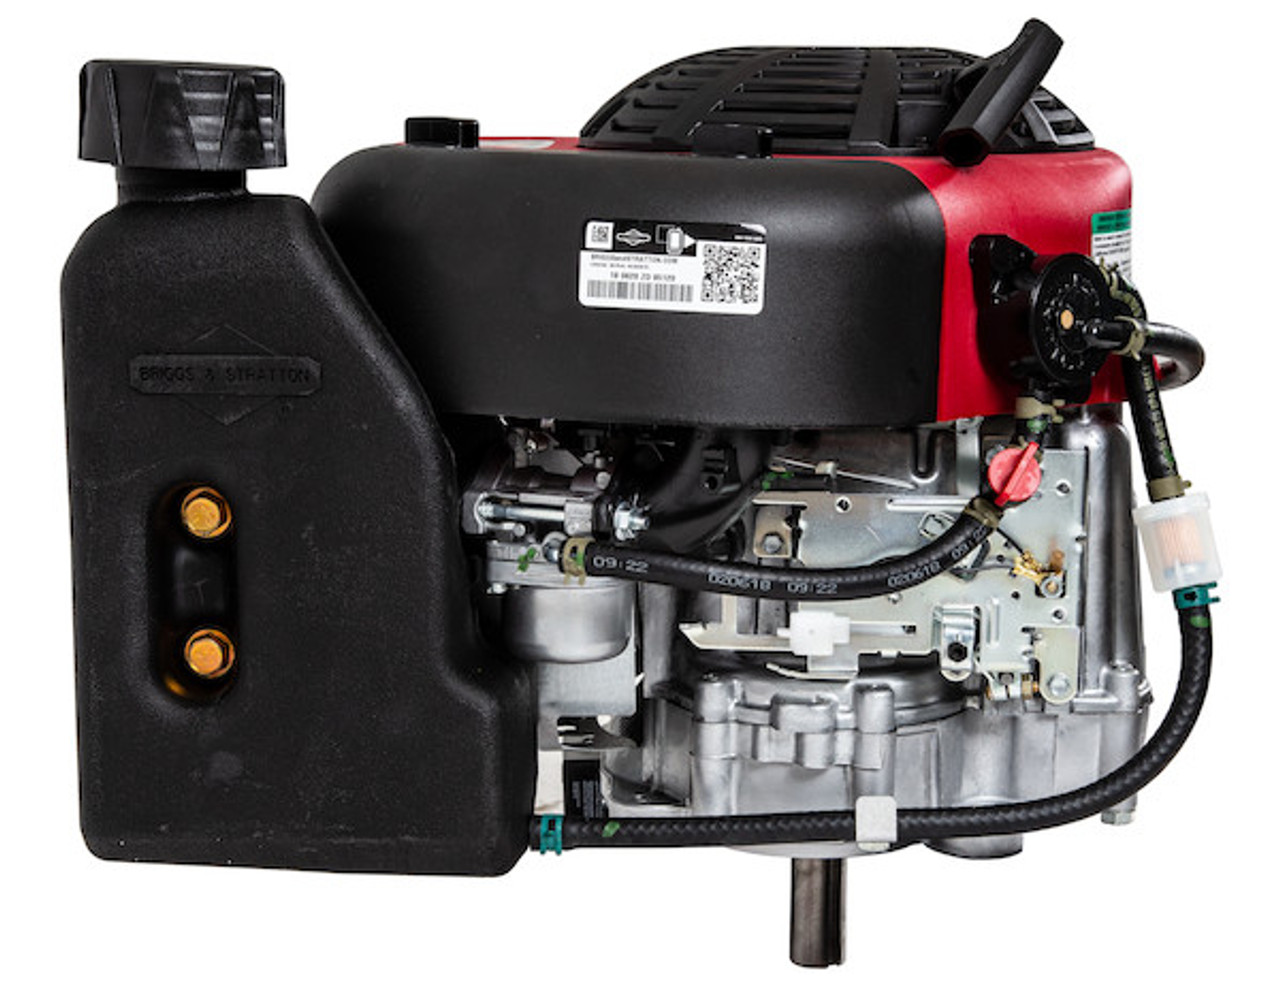 3006887 BUYERS SALTDOGG 10.5 HP BRIGGS & STRATTON GAS ENGINE